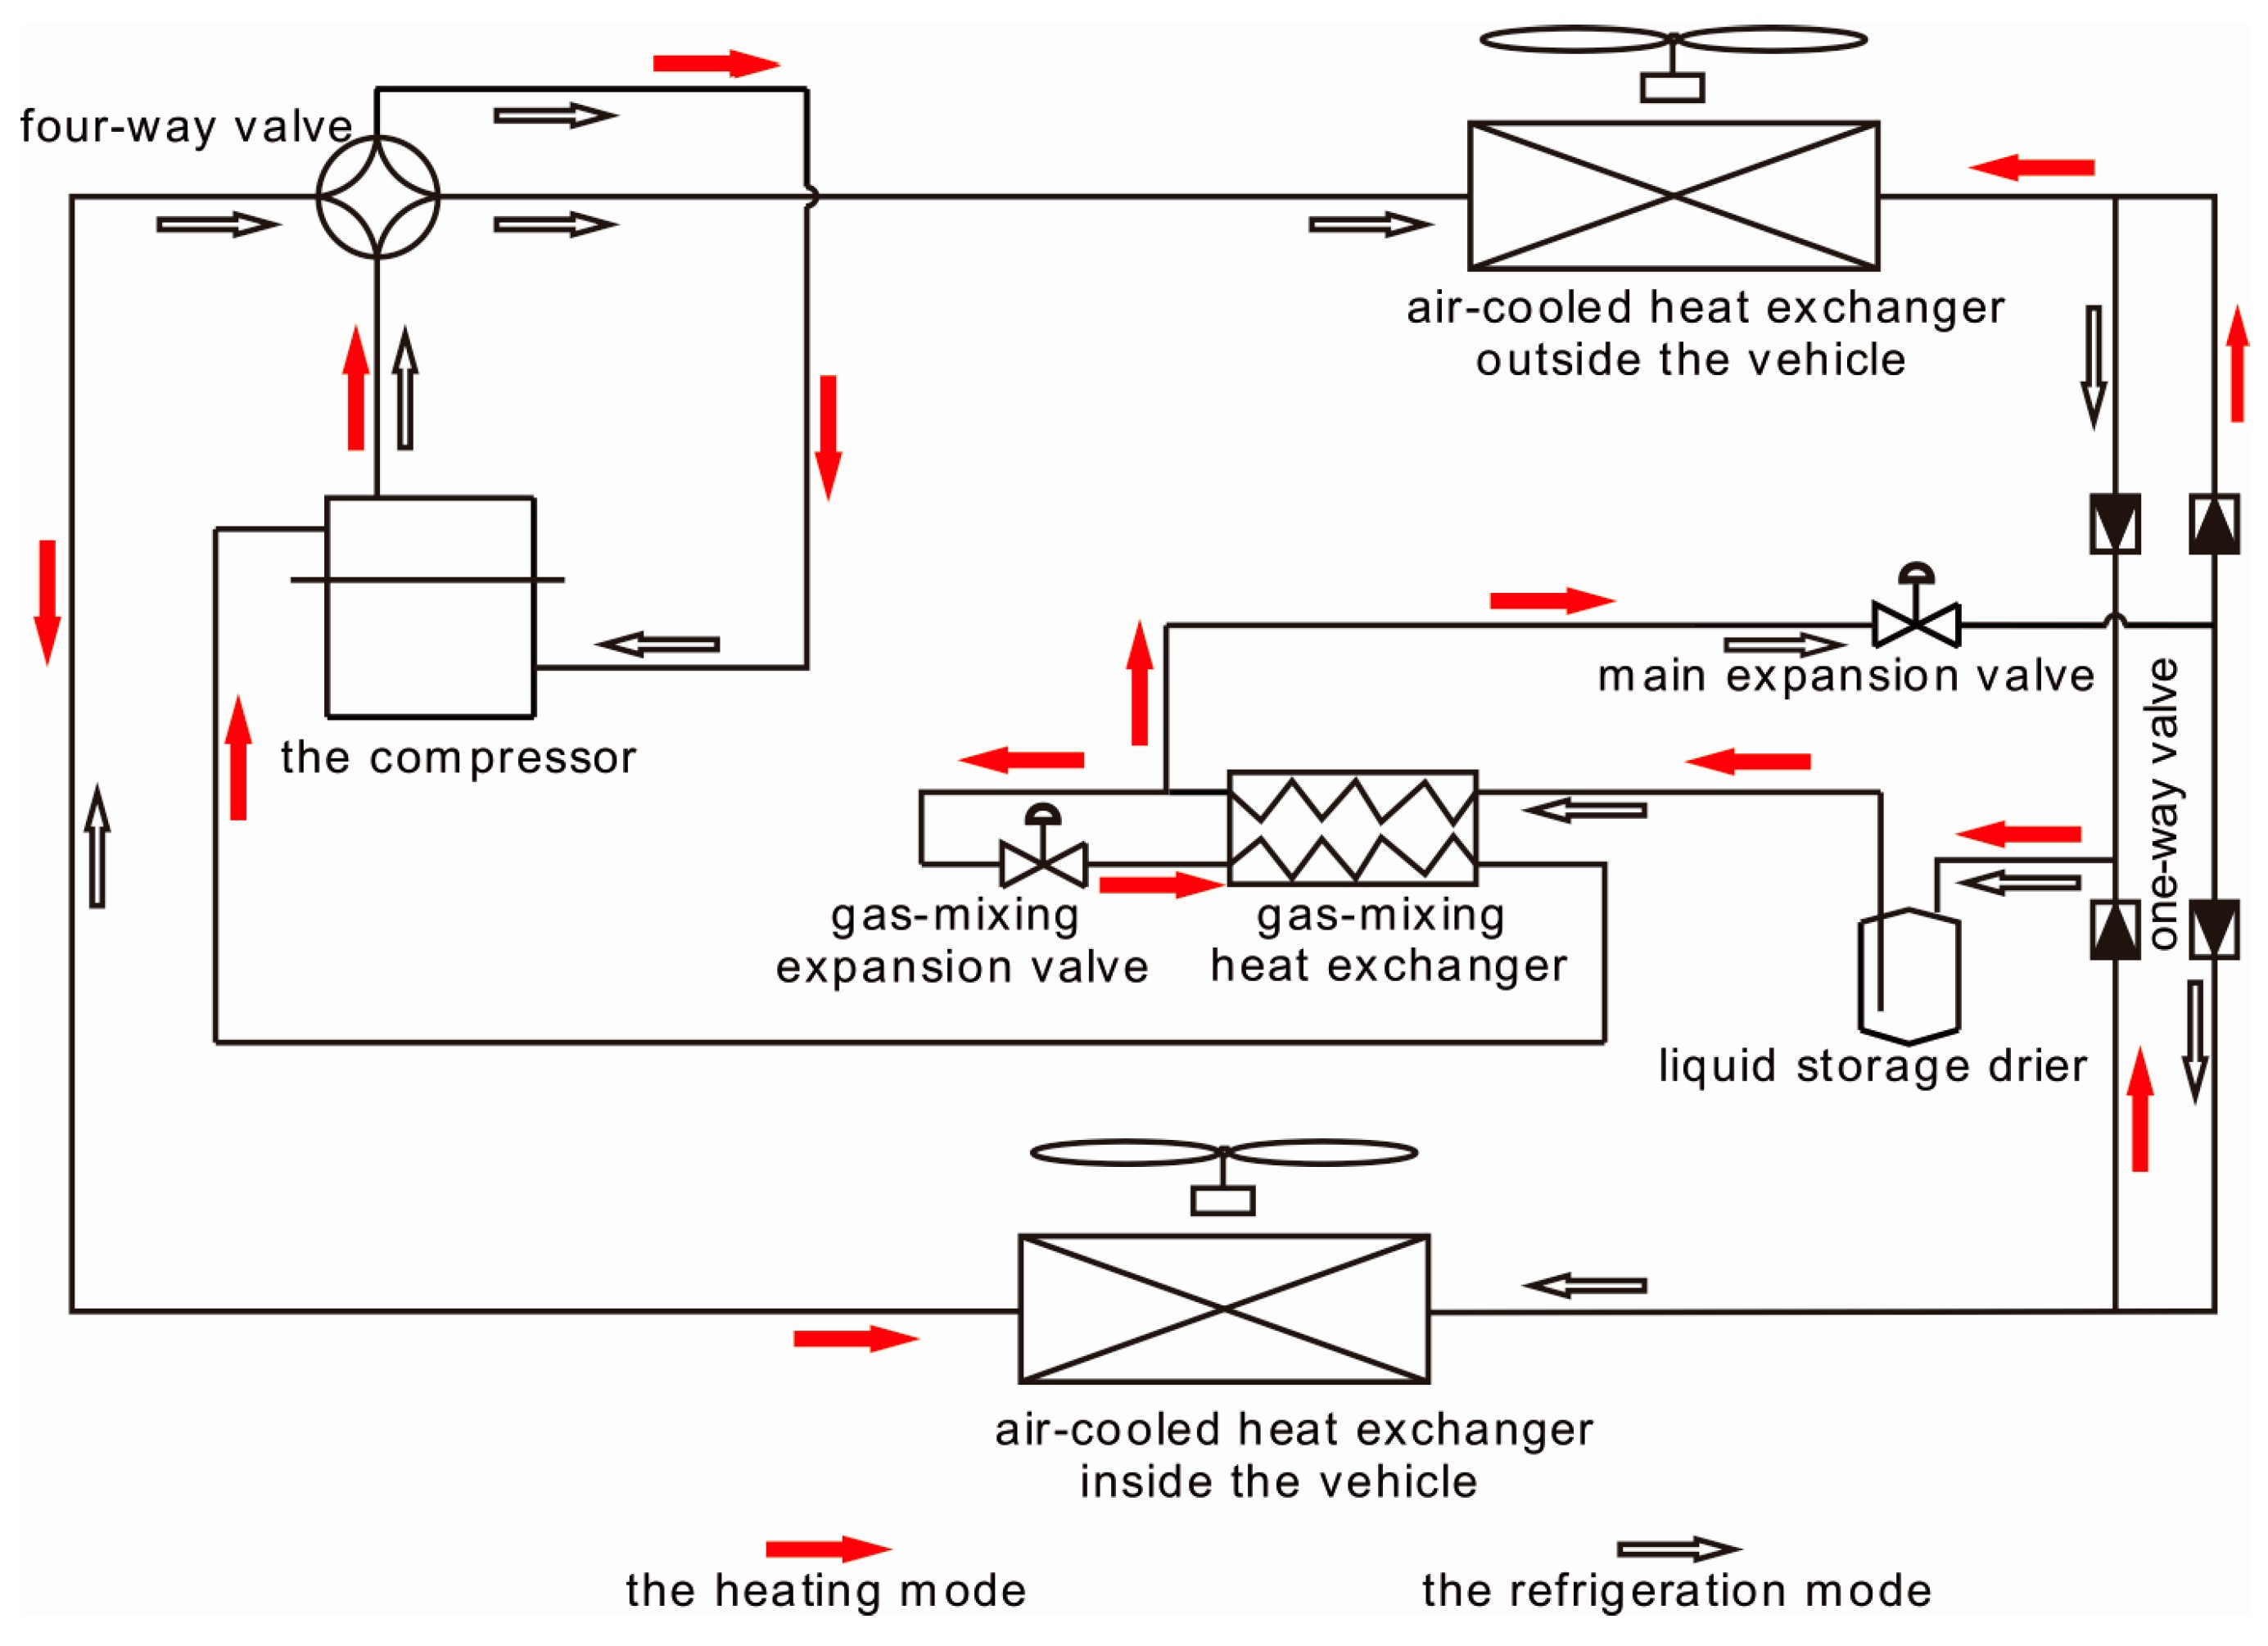 Ac System Diagram Car Energies Free Full Text Of Ac System Diagram Car